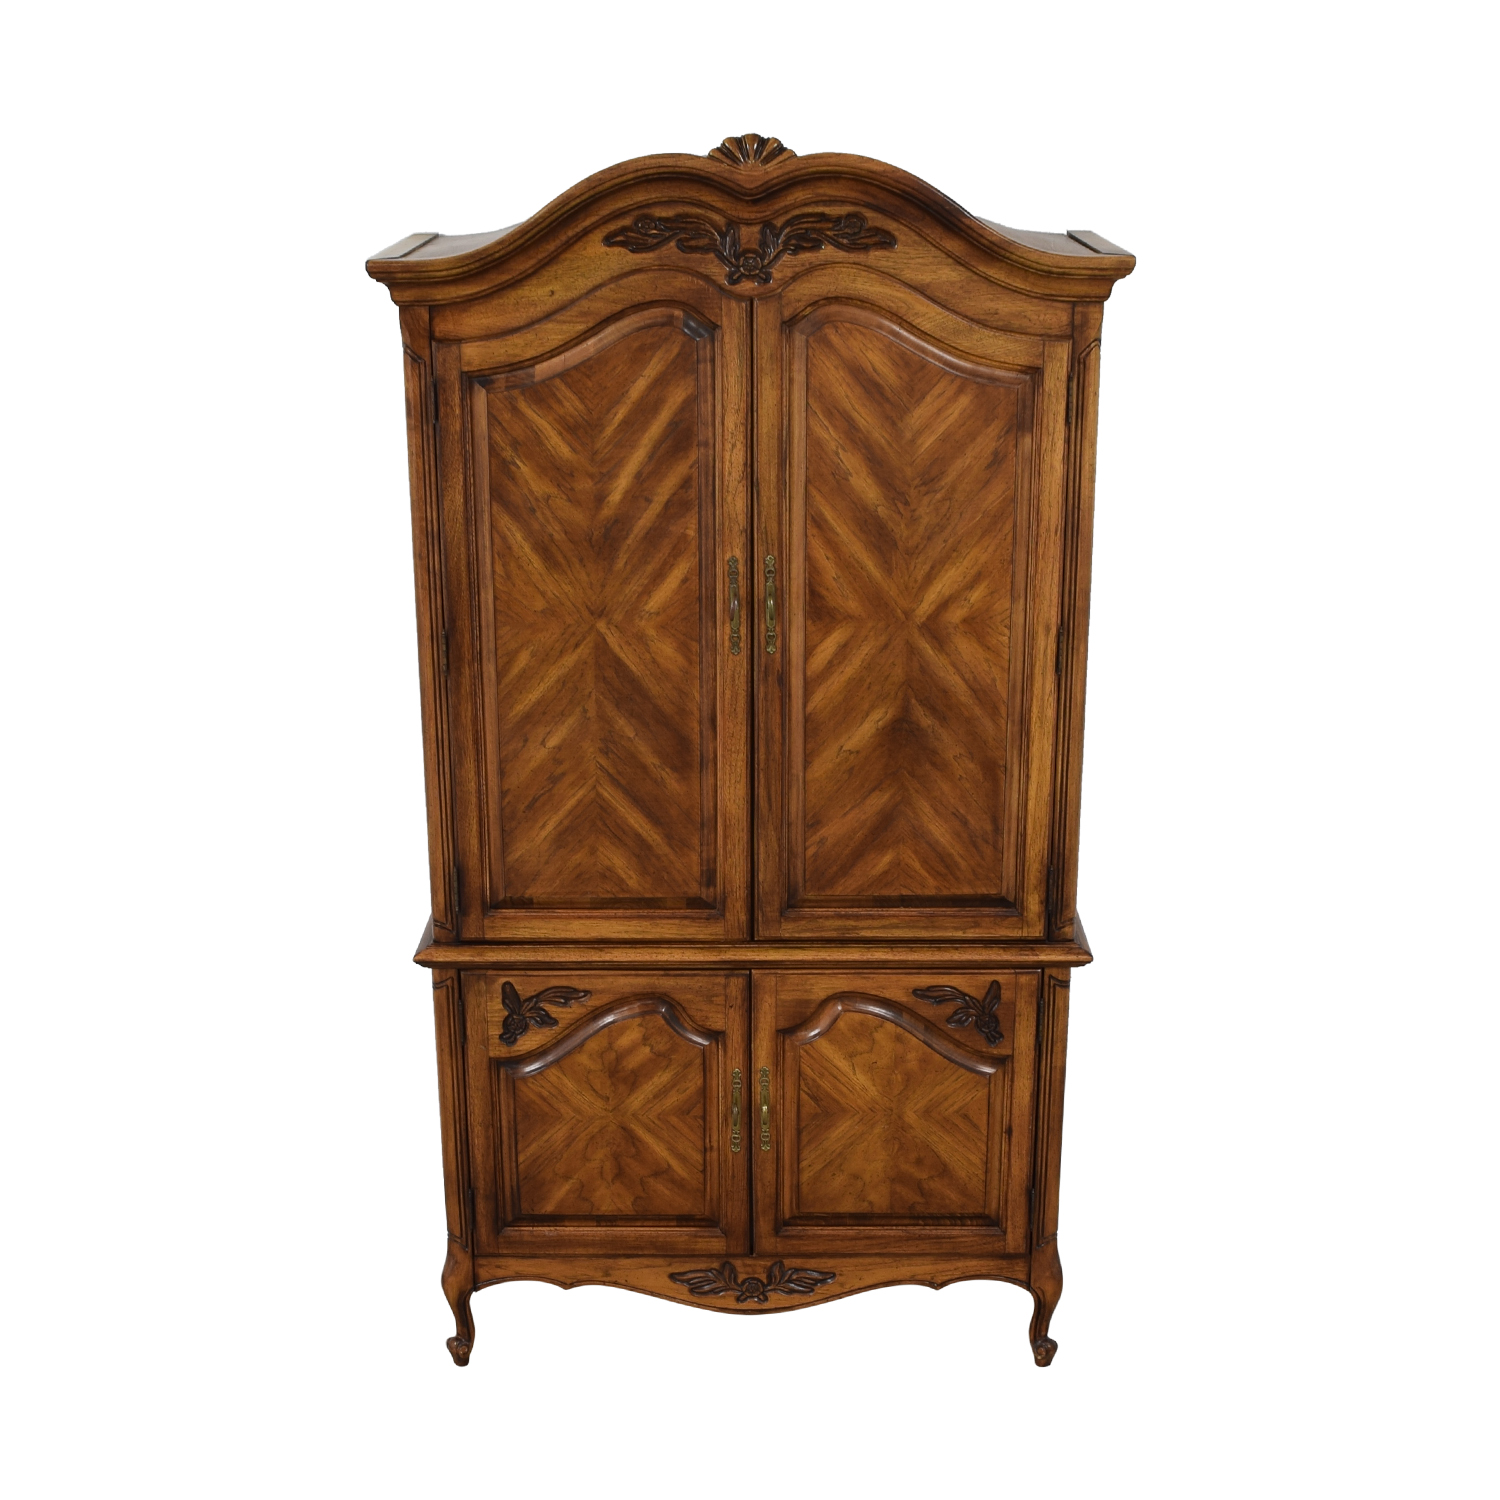 Wood Four-Drawer Clothing Armoire used